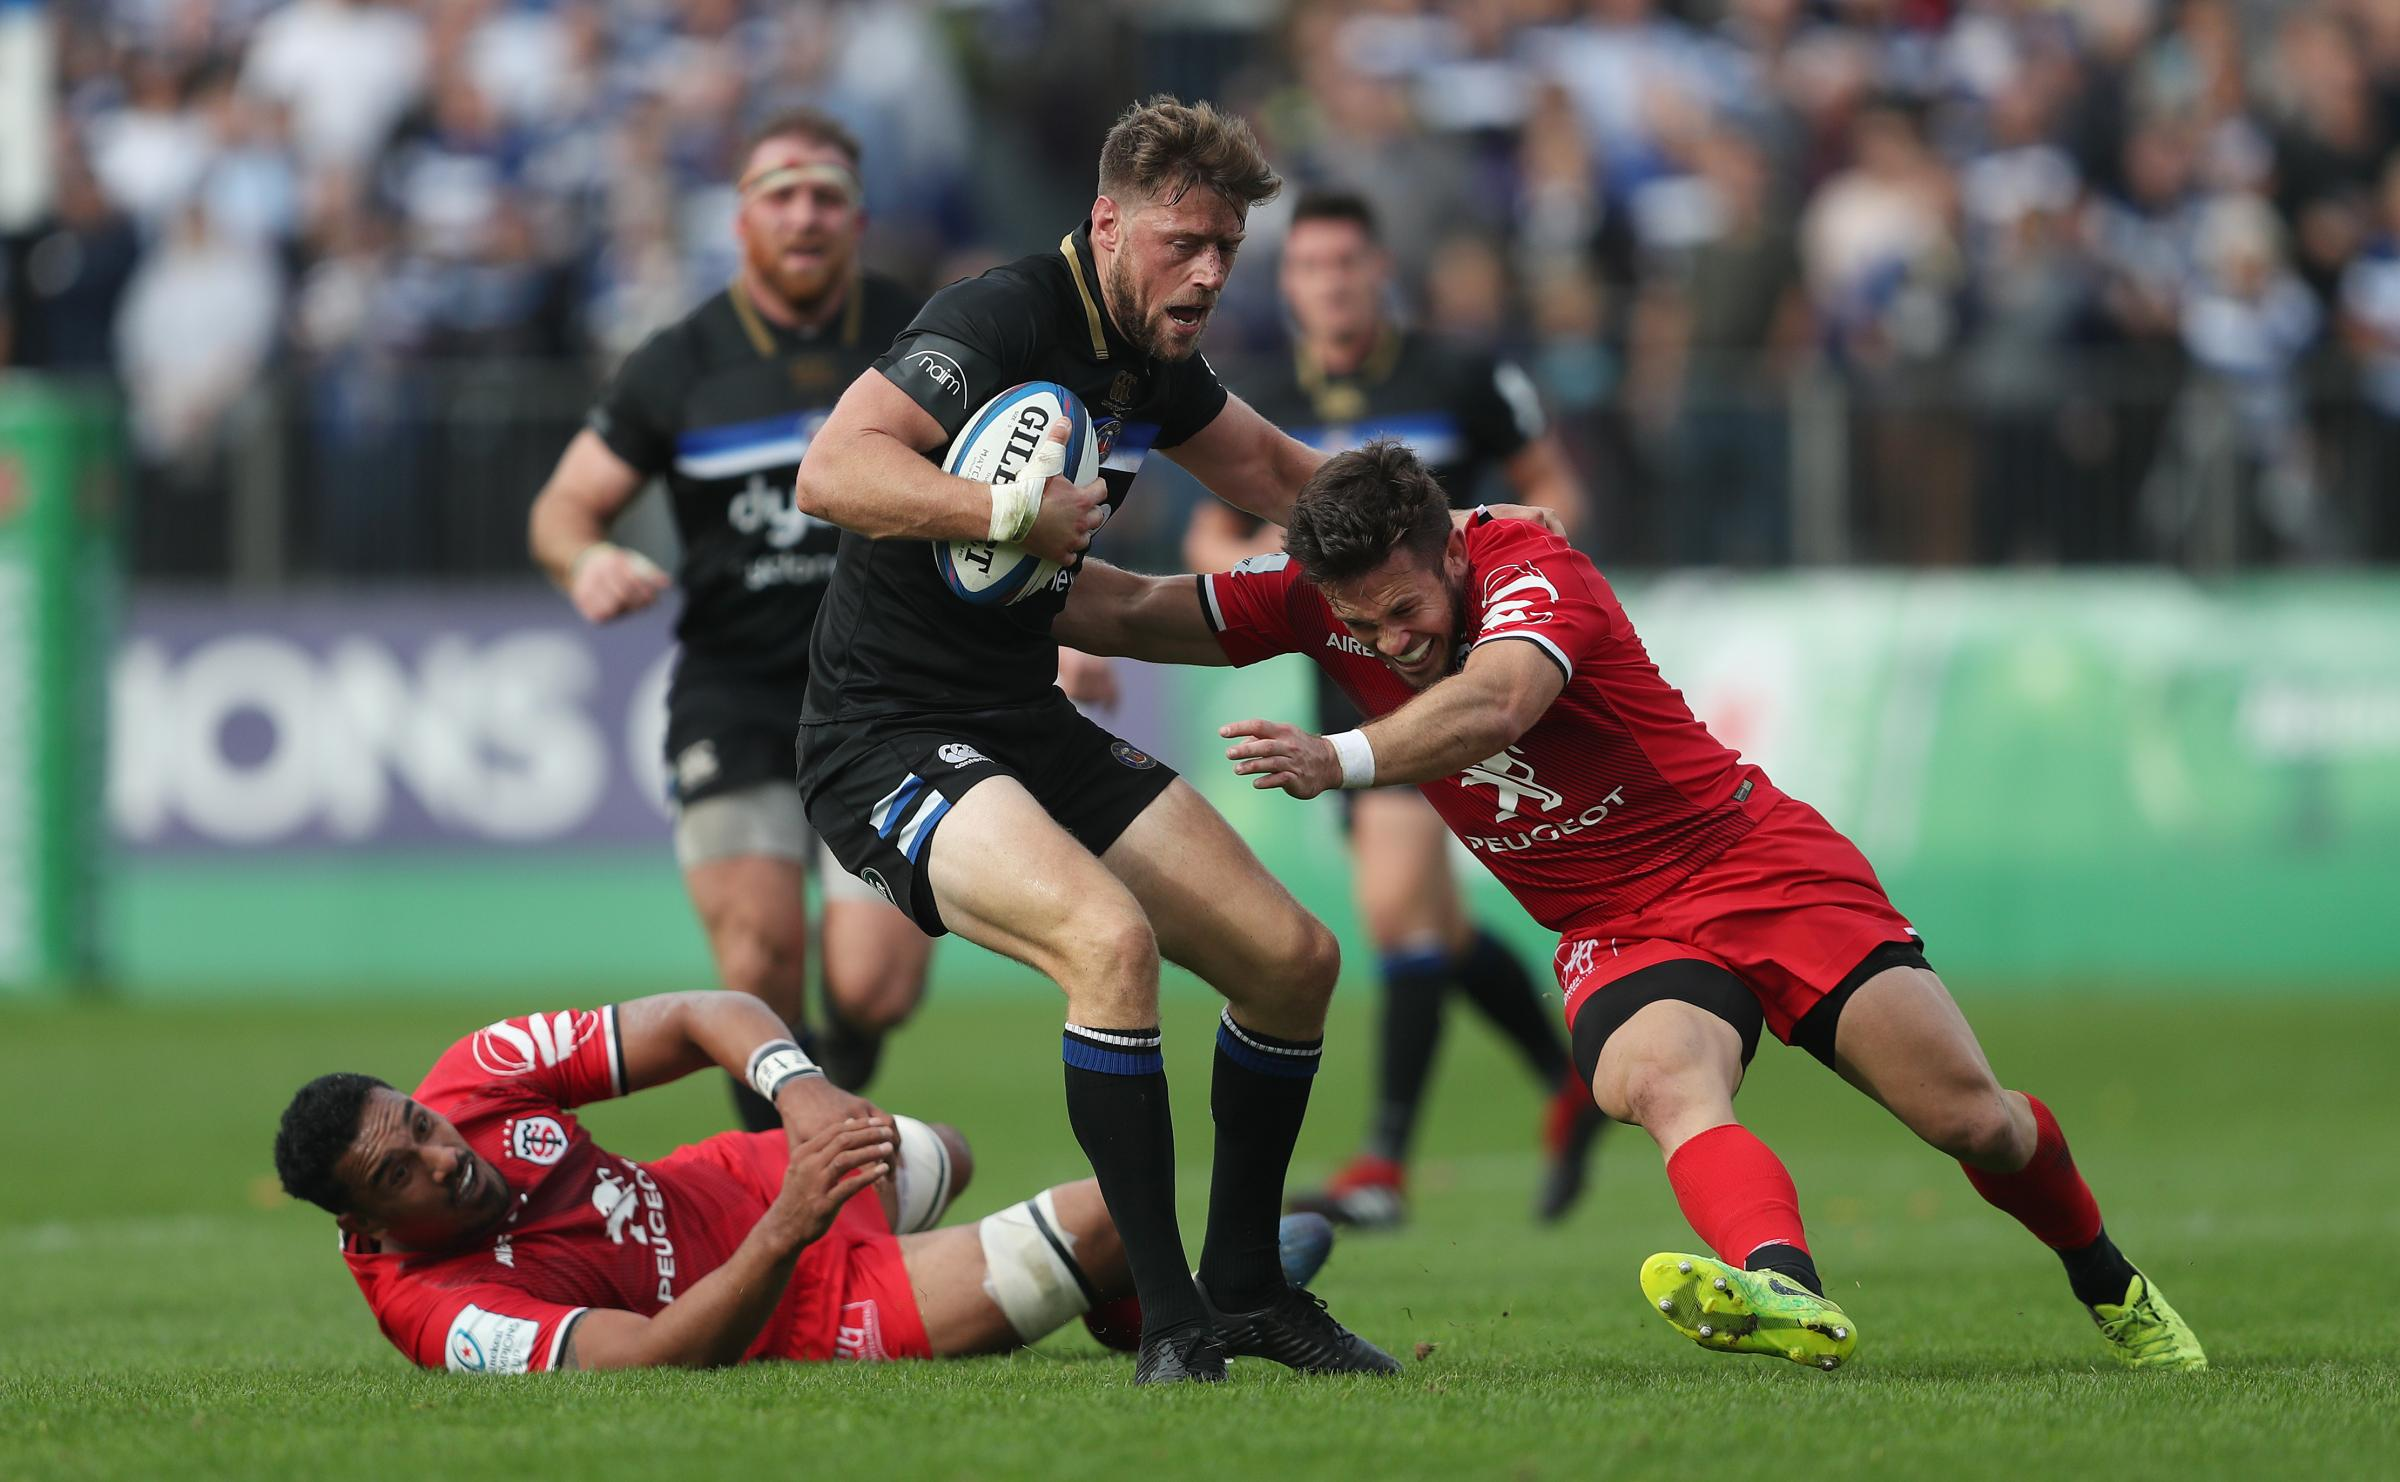 Bath's Rhys Priestland is tackled by Toulouse Zack Holmes  the European Champions Cup match at the Recreation Ground, Bath. PRESS ASSOCIATION Photo. Picture date: Saturday October 13, 2018. See PA story RUGBYU Bath. Photo credit should read: David Dav